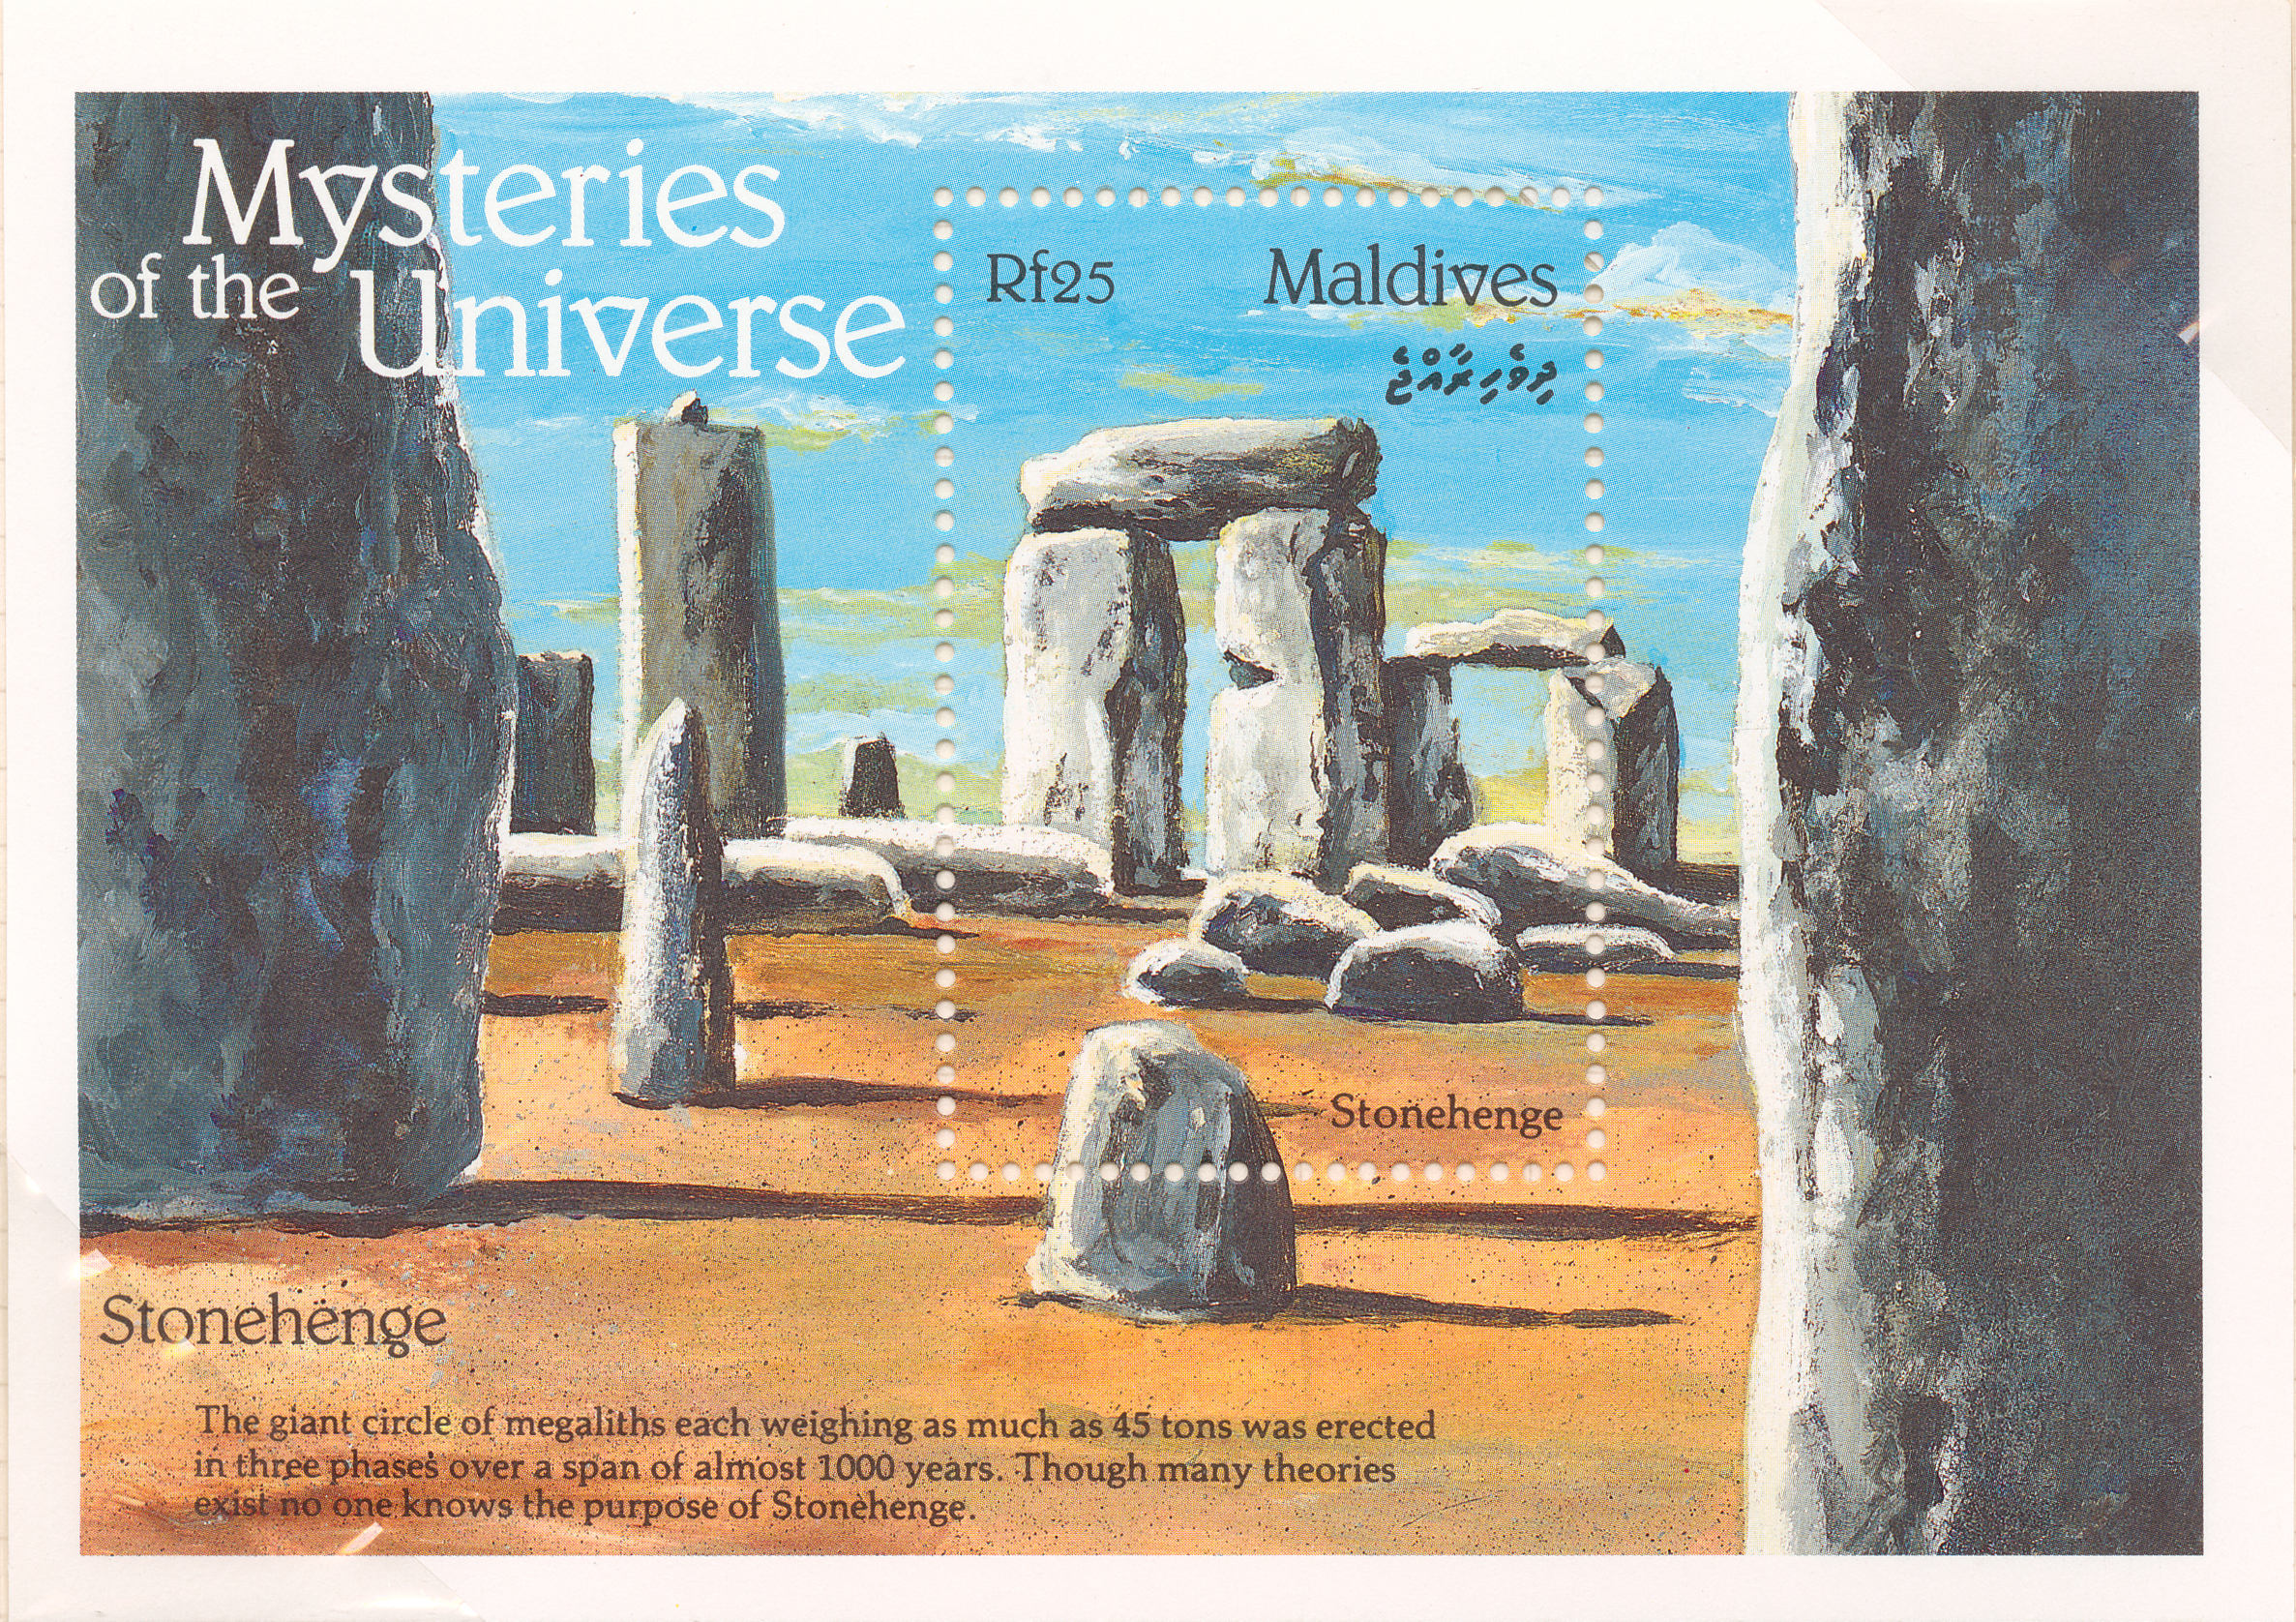 Image of a Maldives stamp depicting Stonehenge as part of their Mysteries of the Universe series.